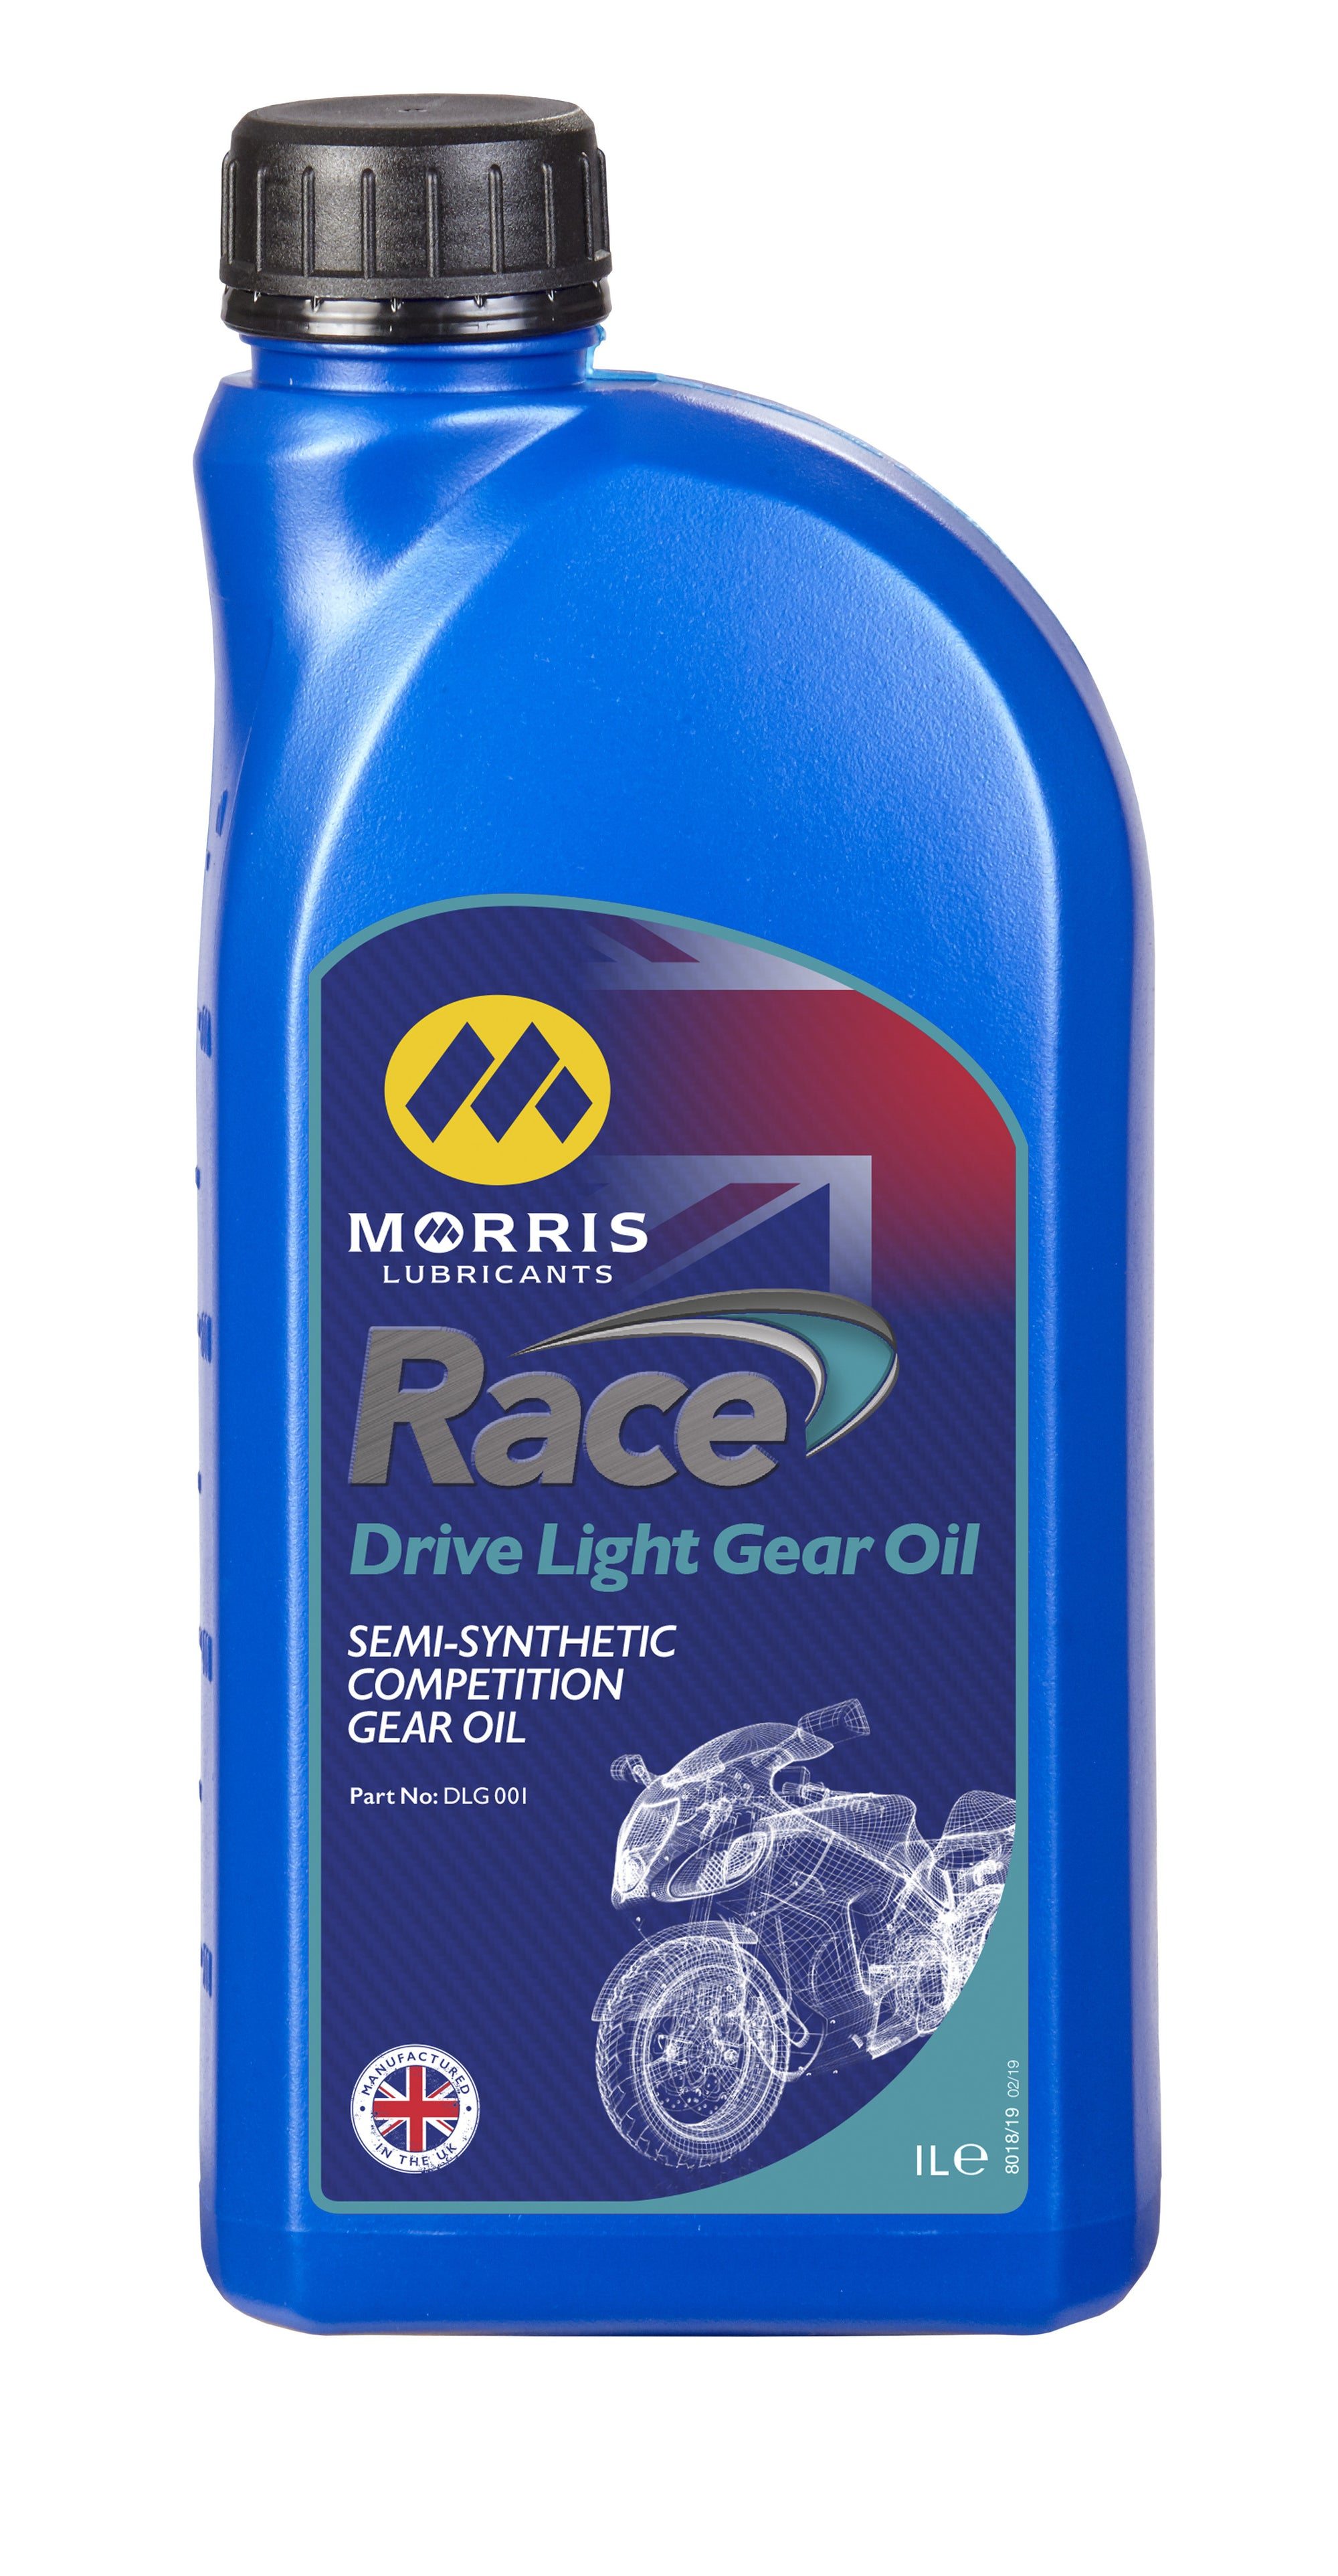 Race LGO, Gear Oil, Morris Lubricants - Averys Motorcycles